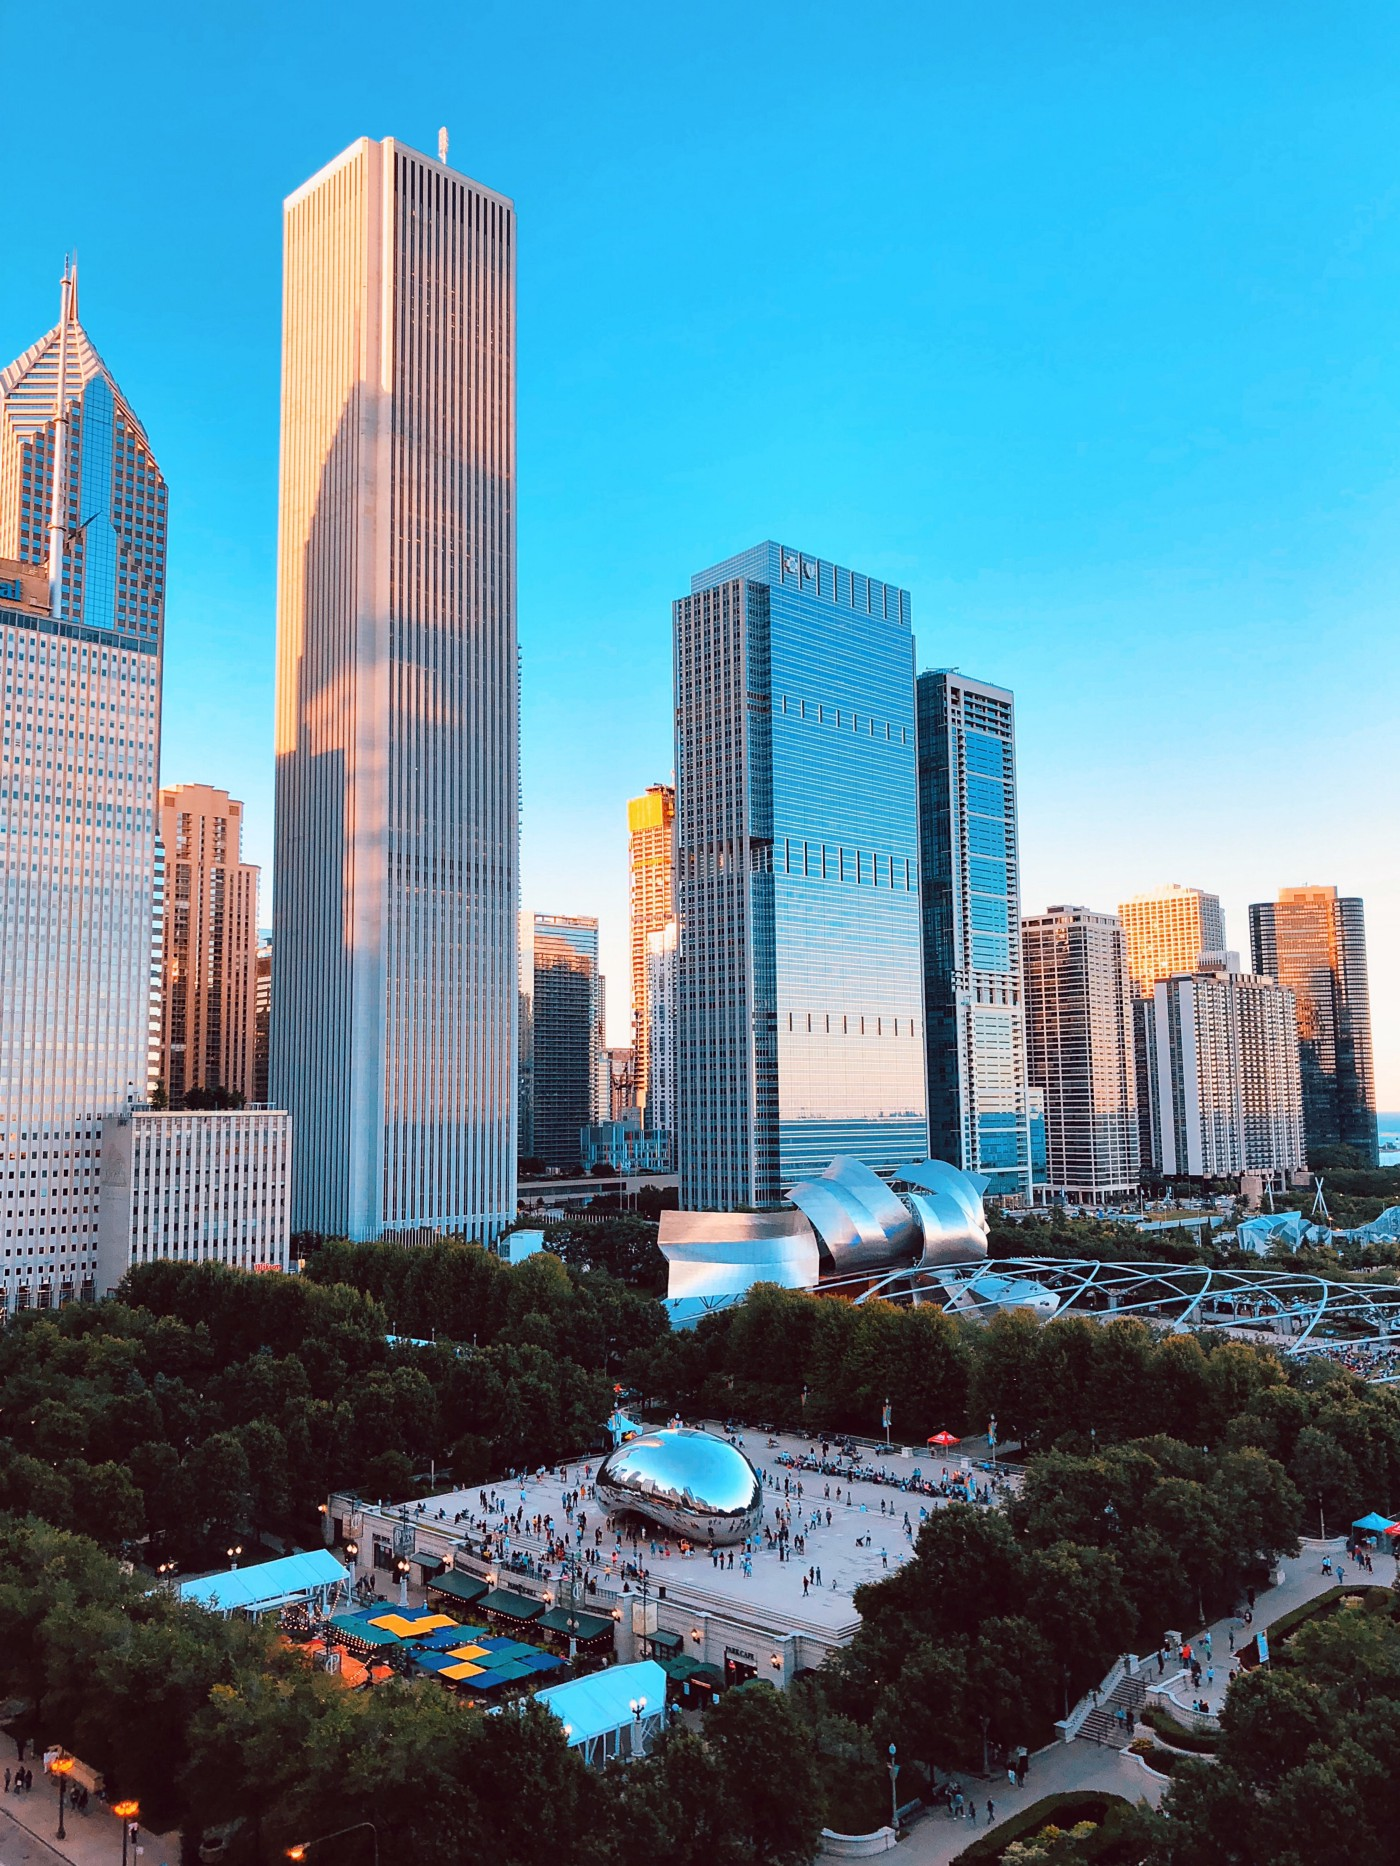 Chicago skyline with view of Millenium Park in the foreground and Aon center behind it. A bright blue sky above.